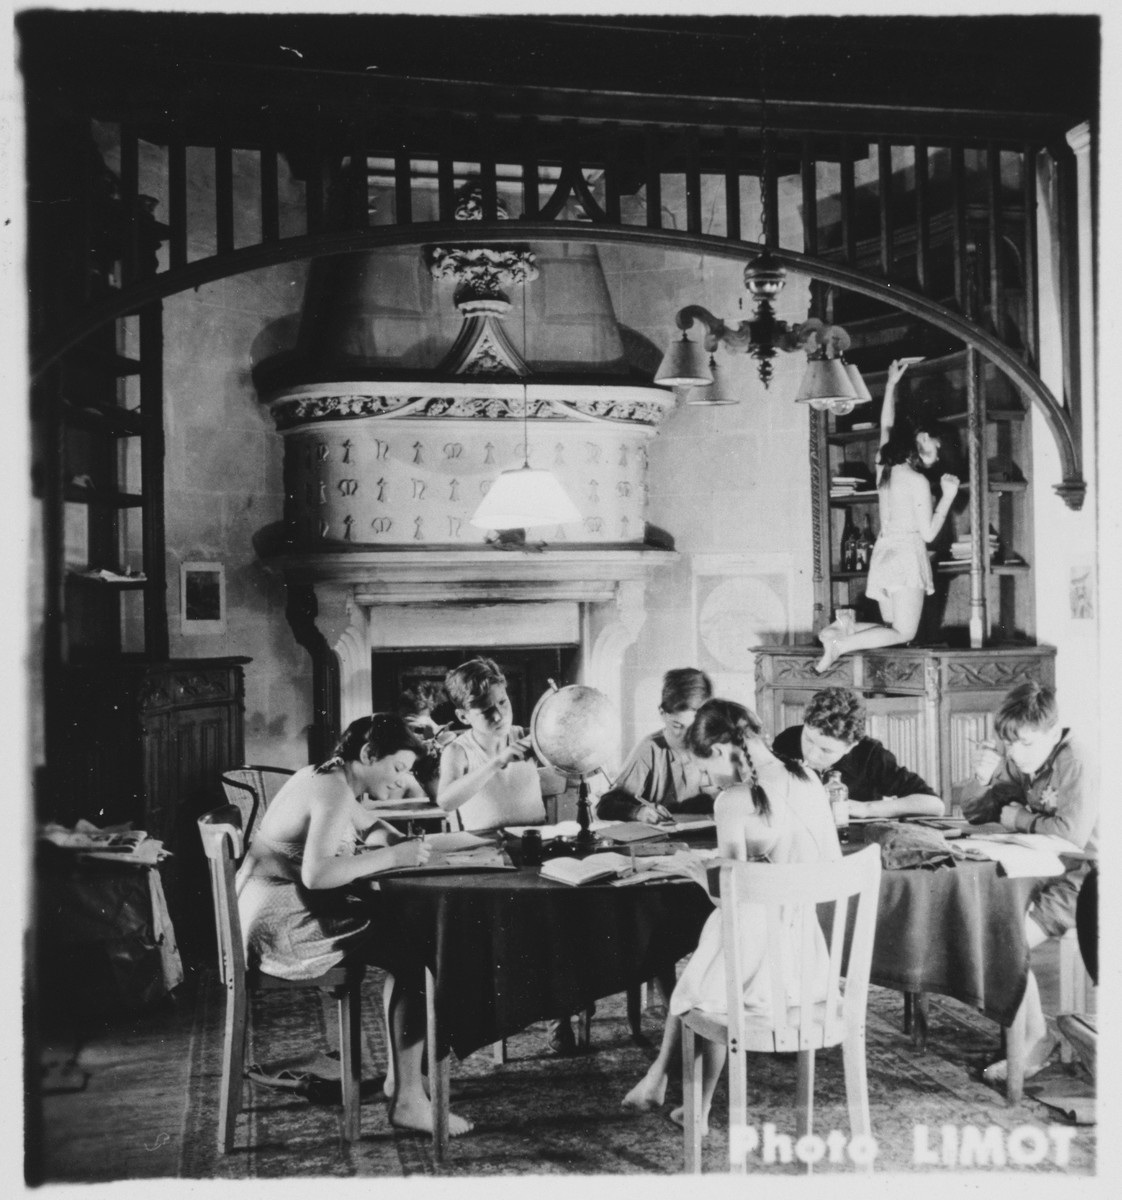 Children study in the library of the Mehoncourt children's home.